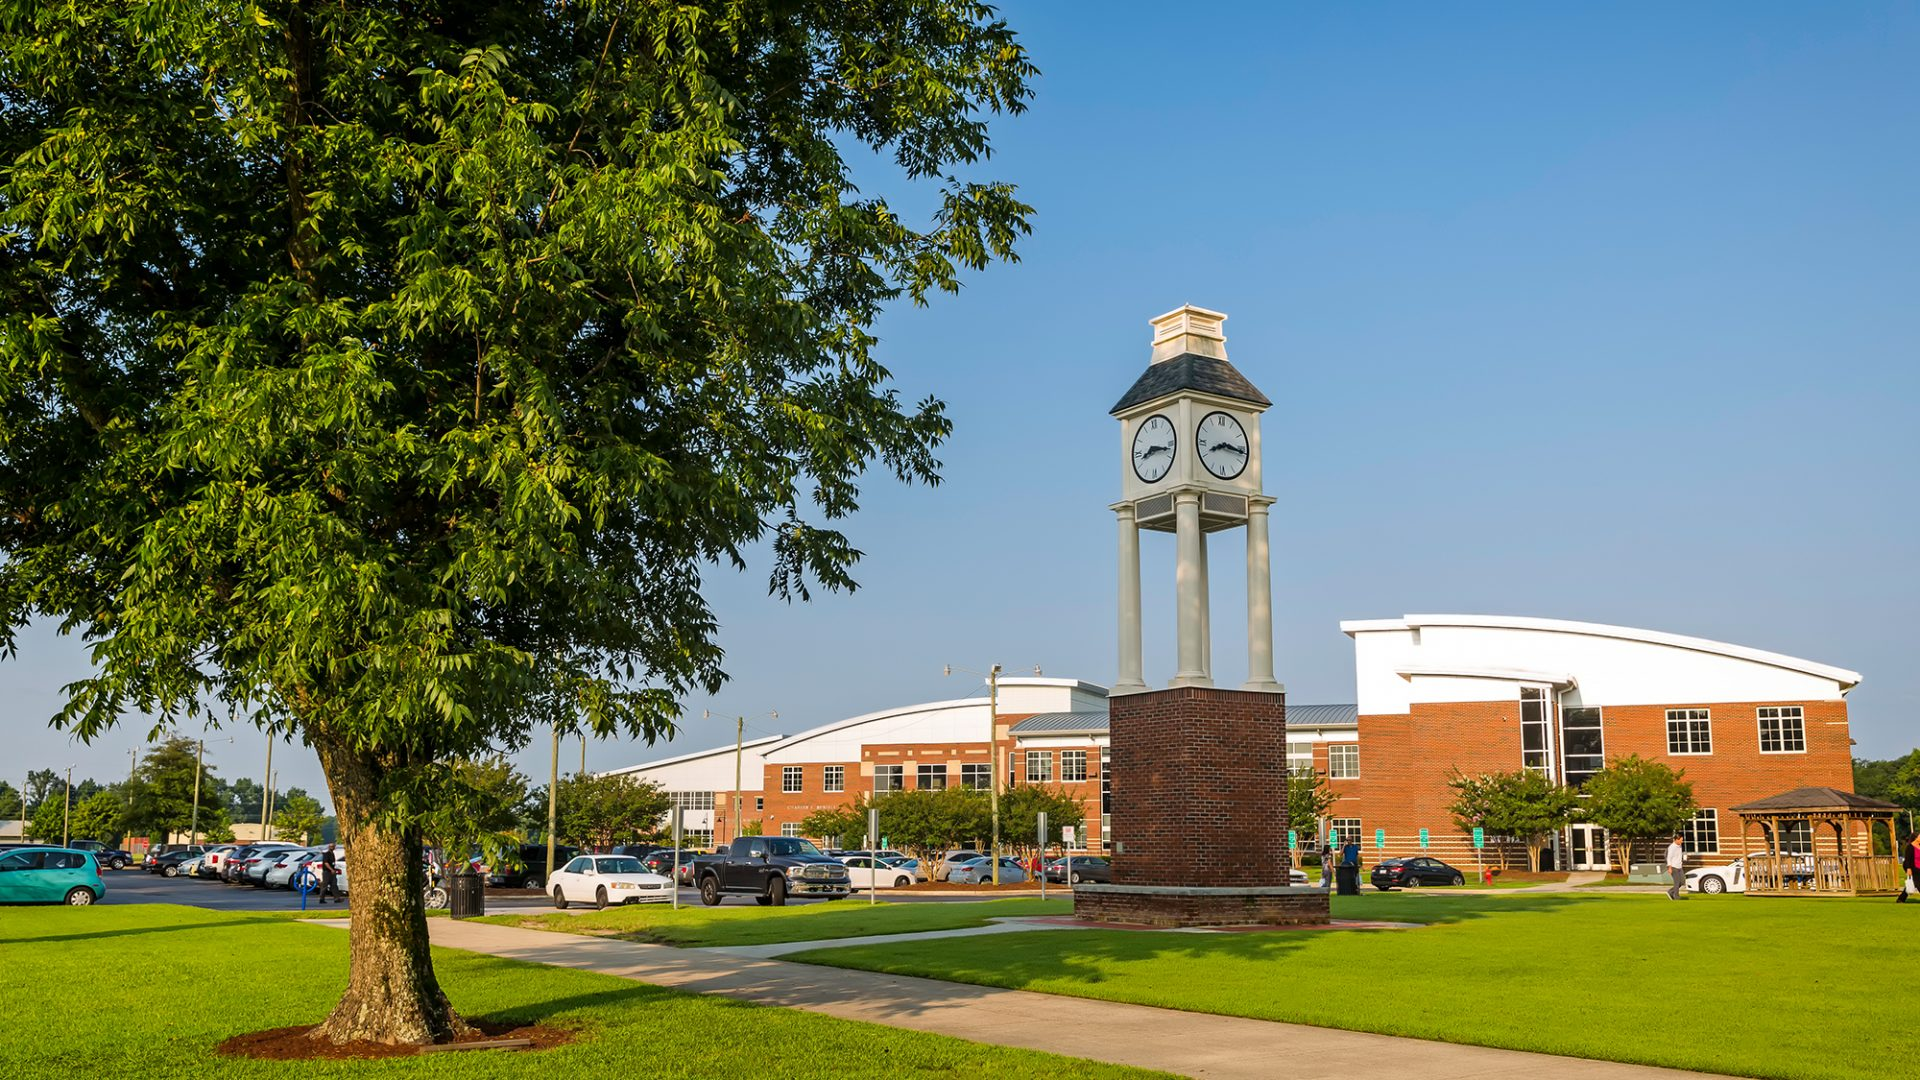 Photo of PCC's Clock Tower with the Charles Russell Building in the background on a summer morning in August.